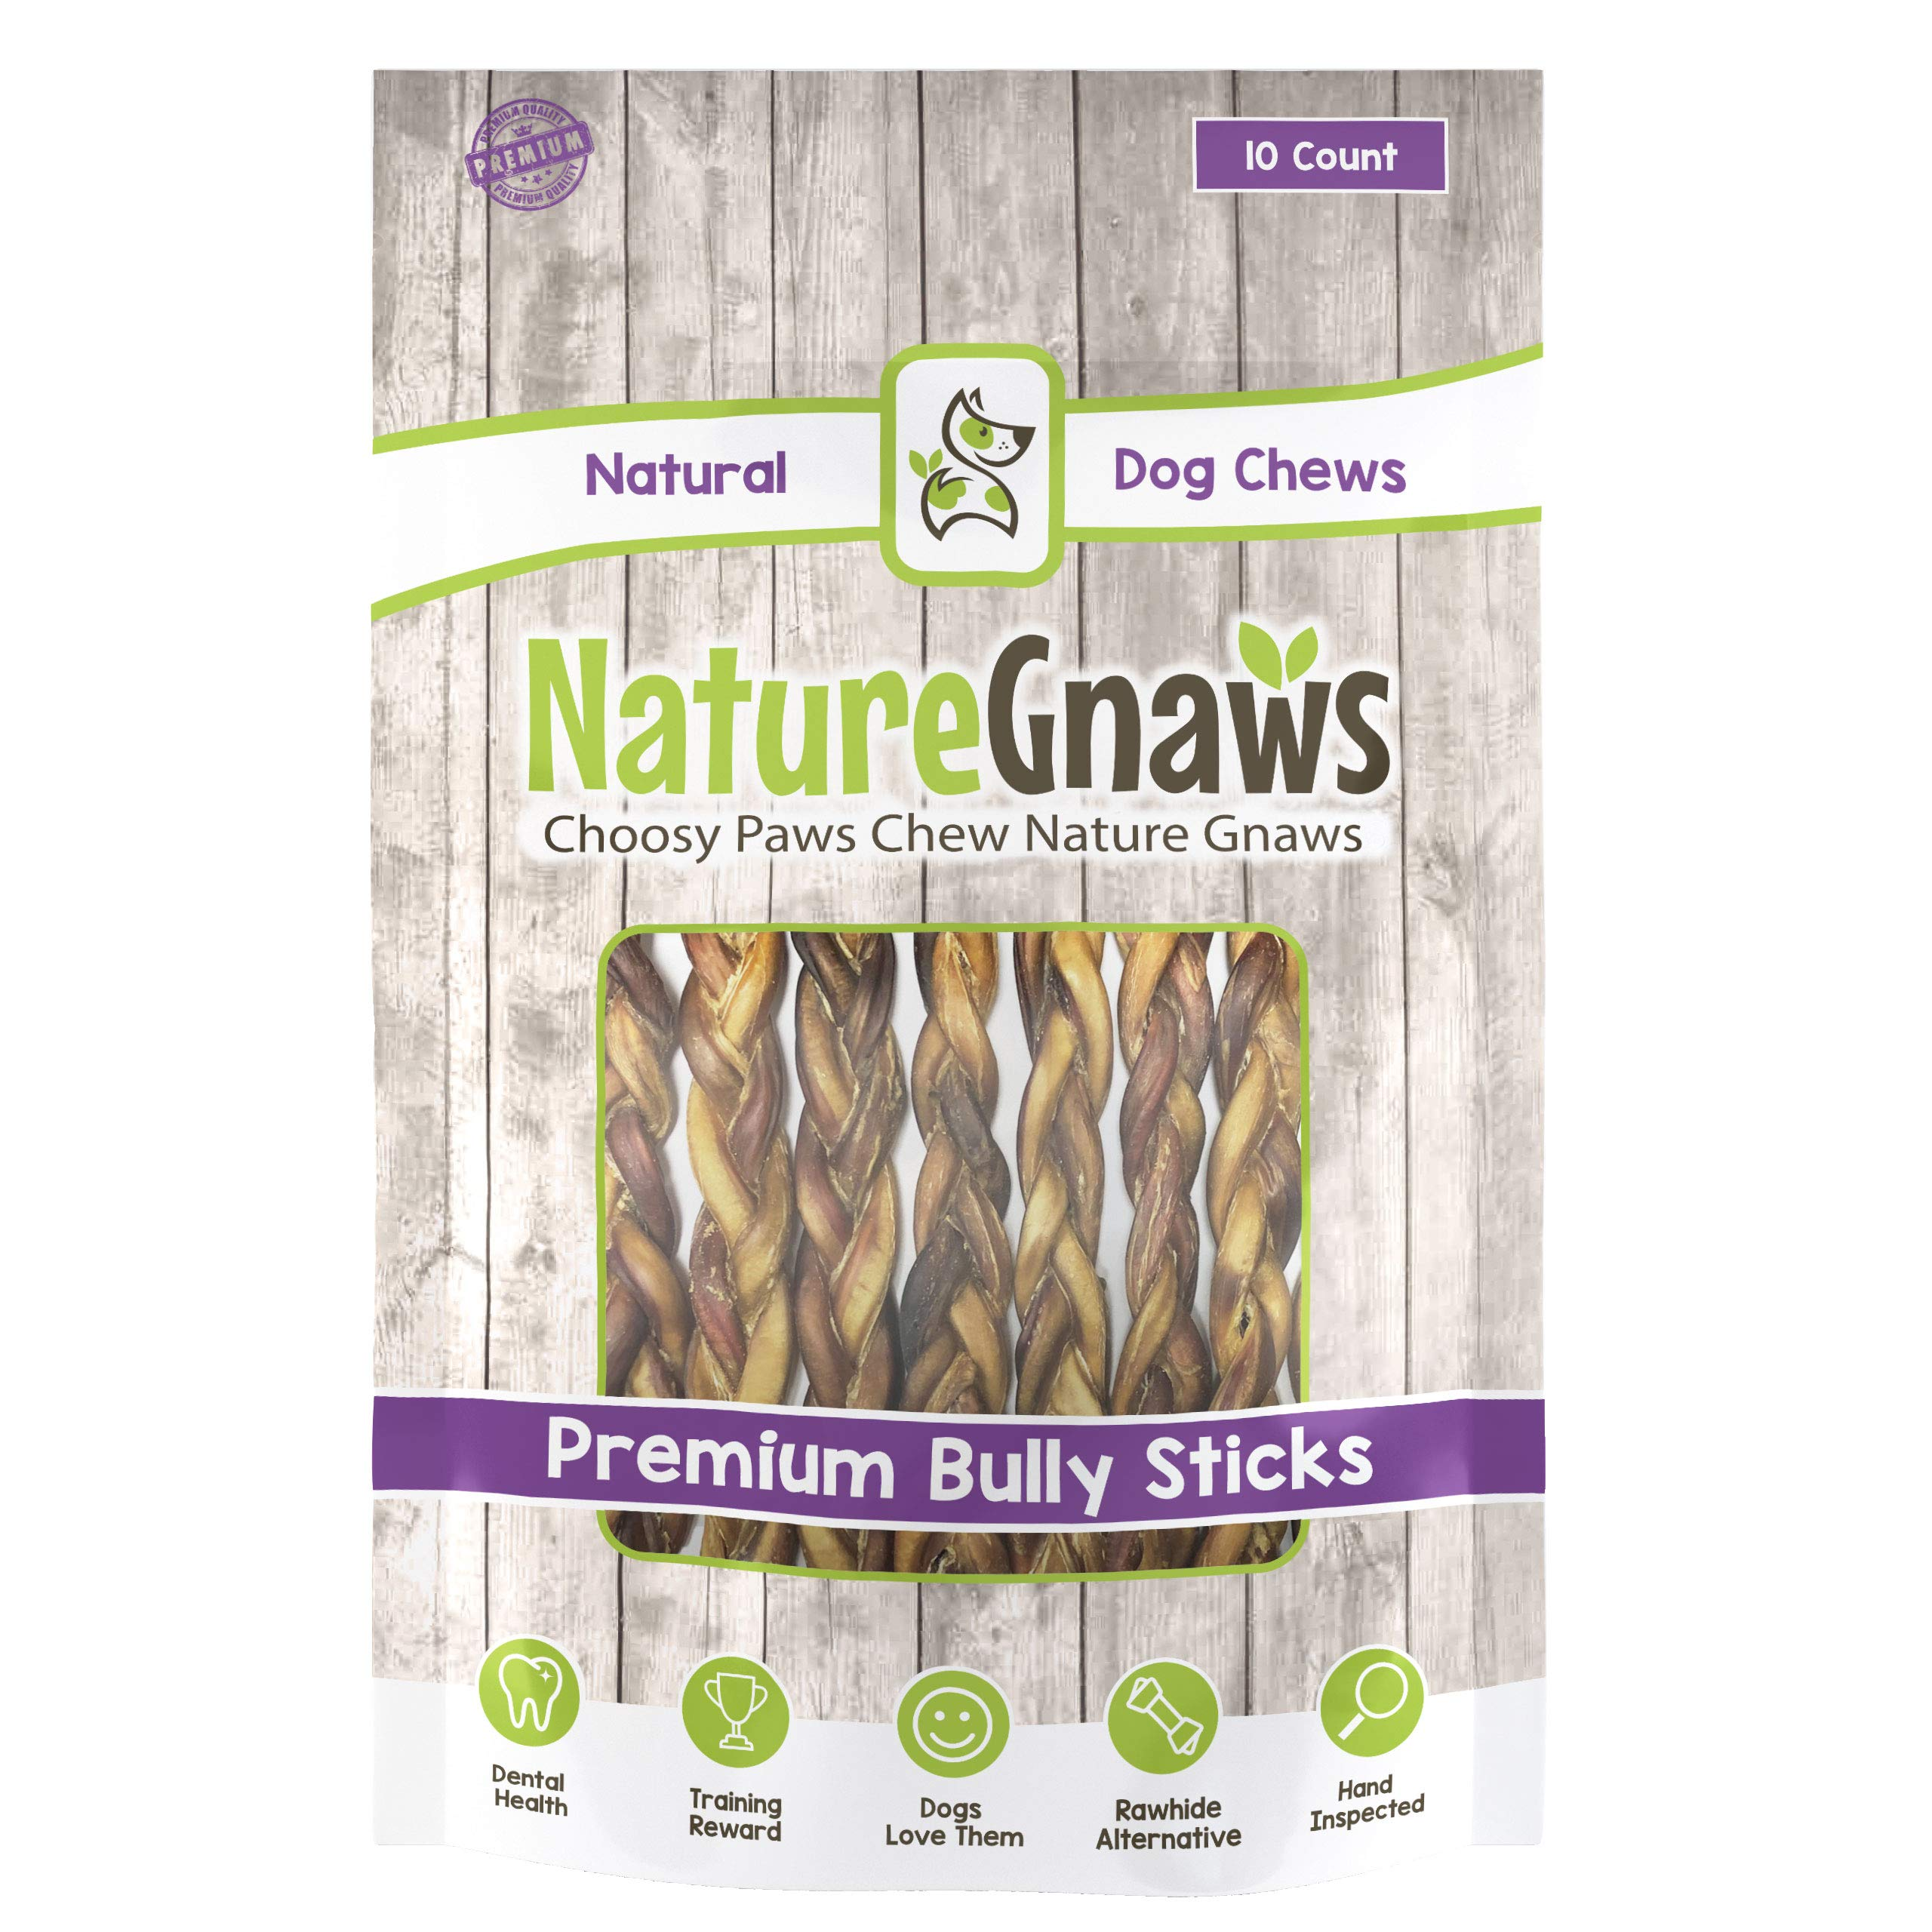 Nature Gnaws Braided Bully Sticks 11-12'' (10 Pack) - 100% Natural Grass-Fed Free-Range Premium Beef Dog Chews by Nature Gnaws